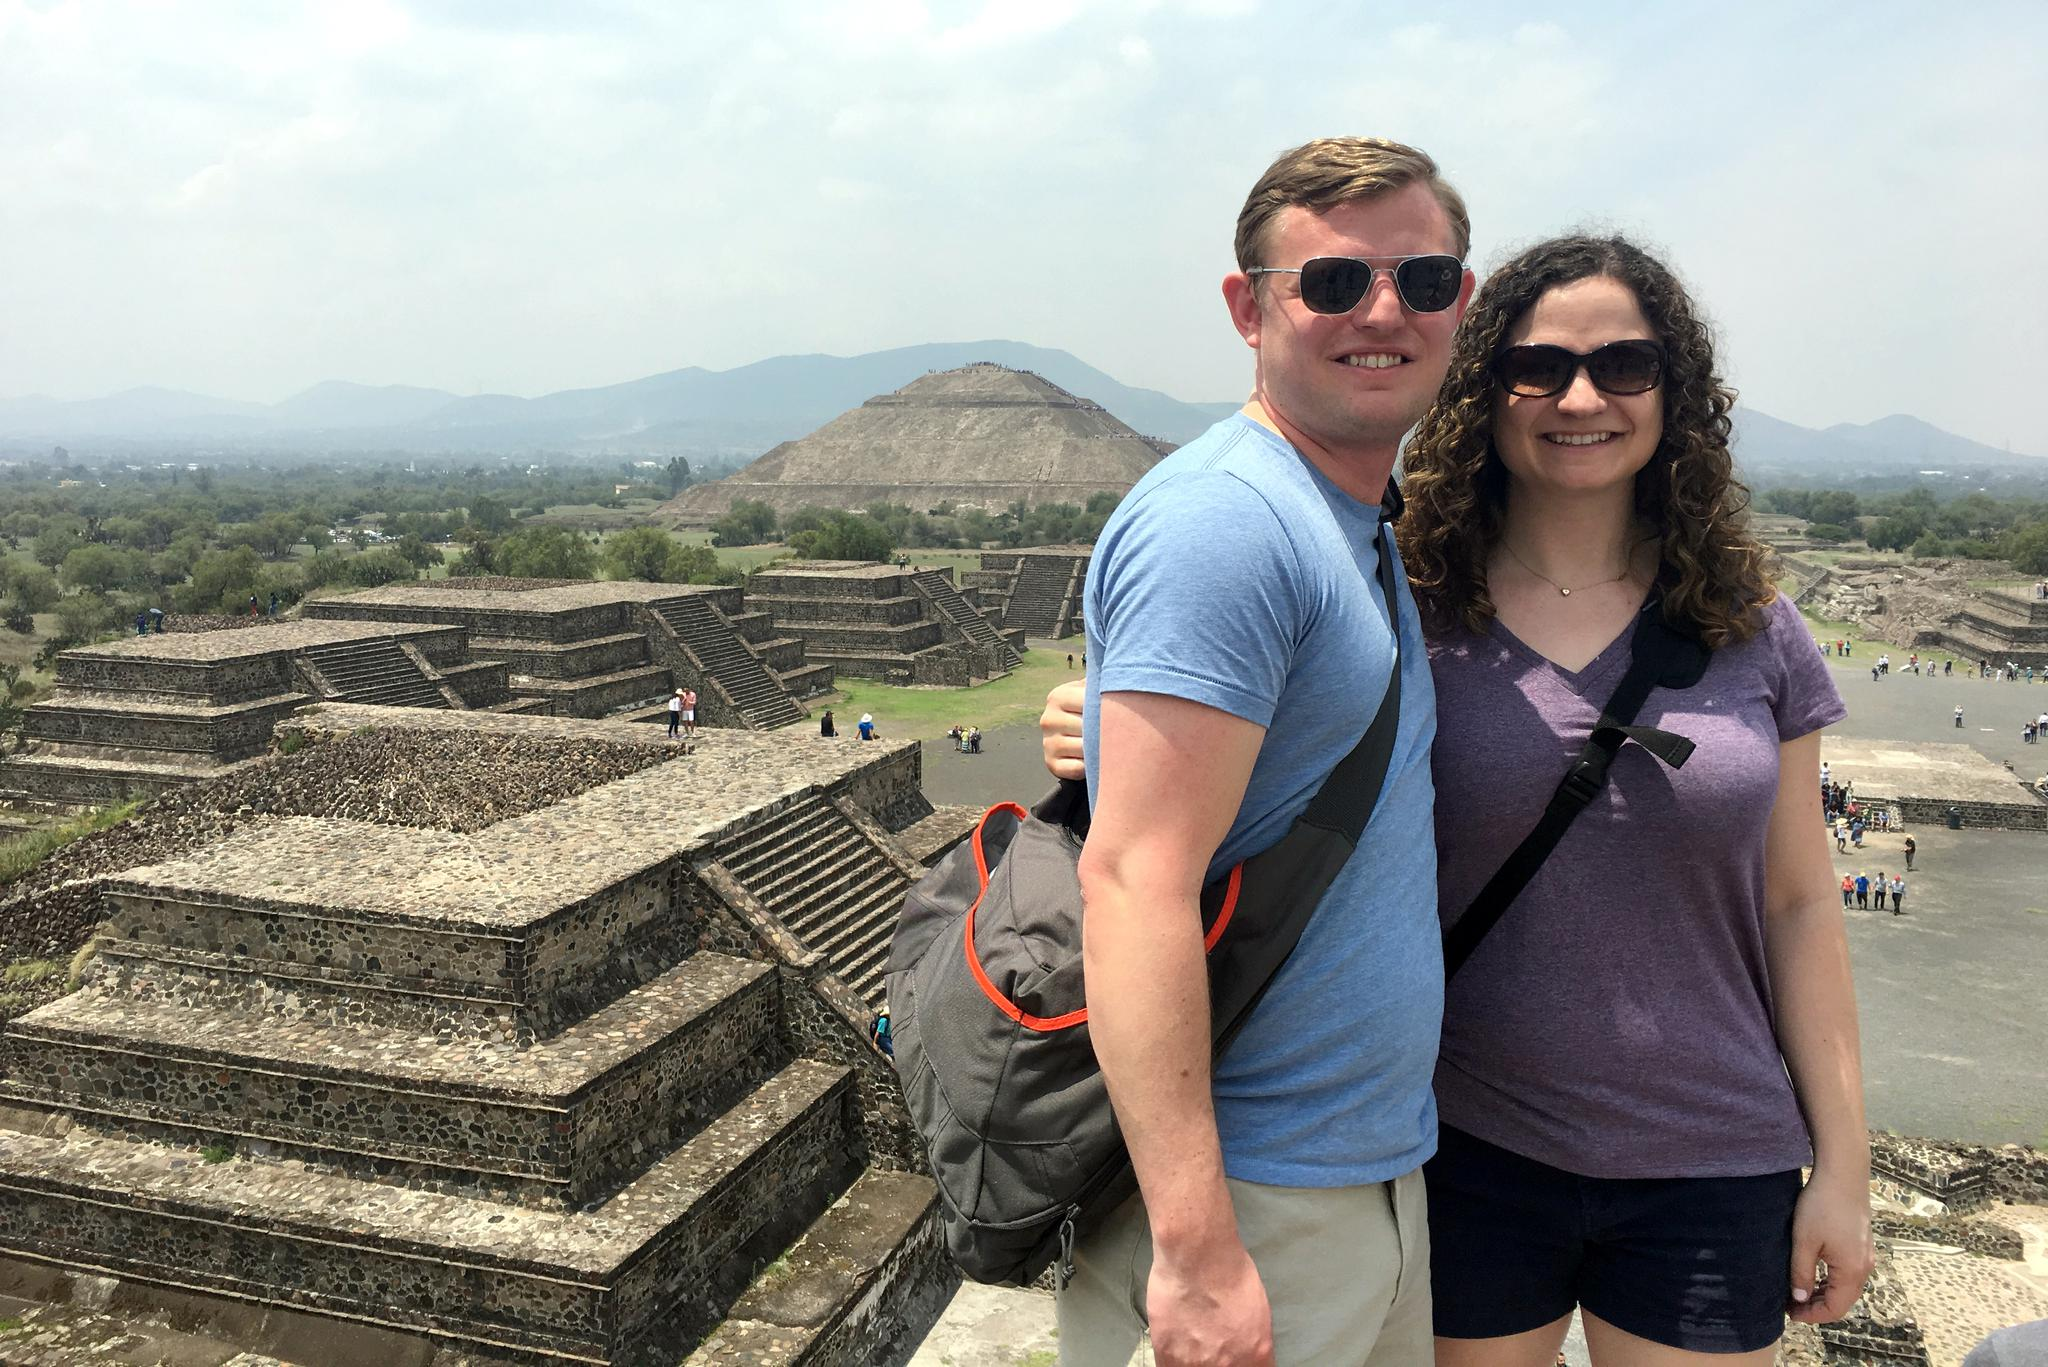 On top of the Pyramid of the Moon